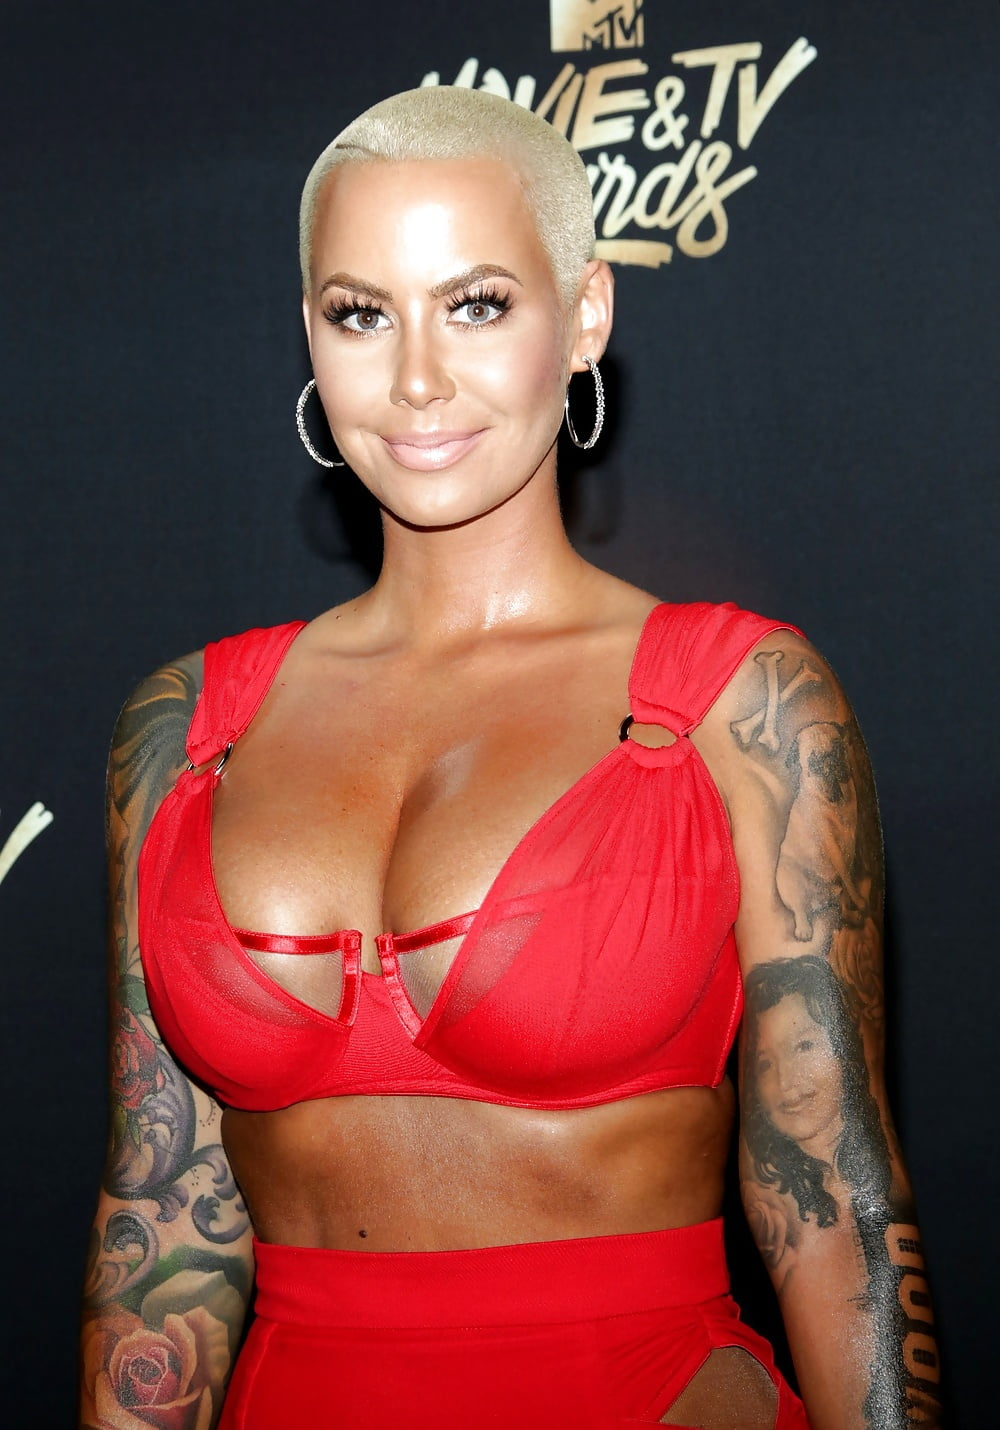 Breast Reduction Surgery Like Amber Rose What To Know Before Hollywood Life